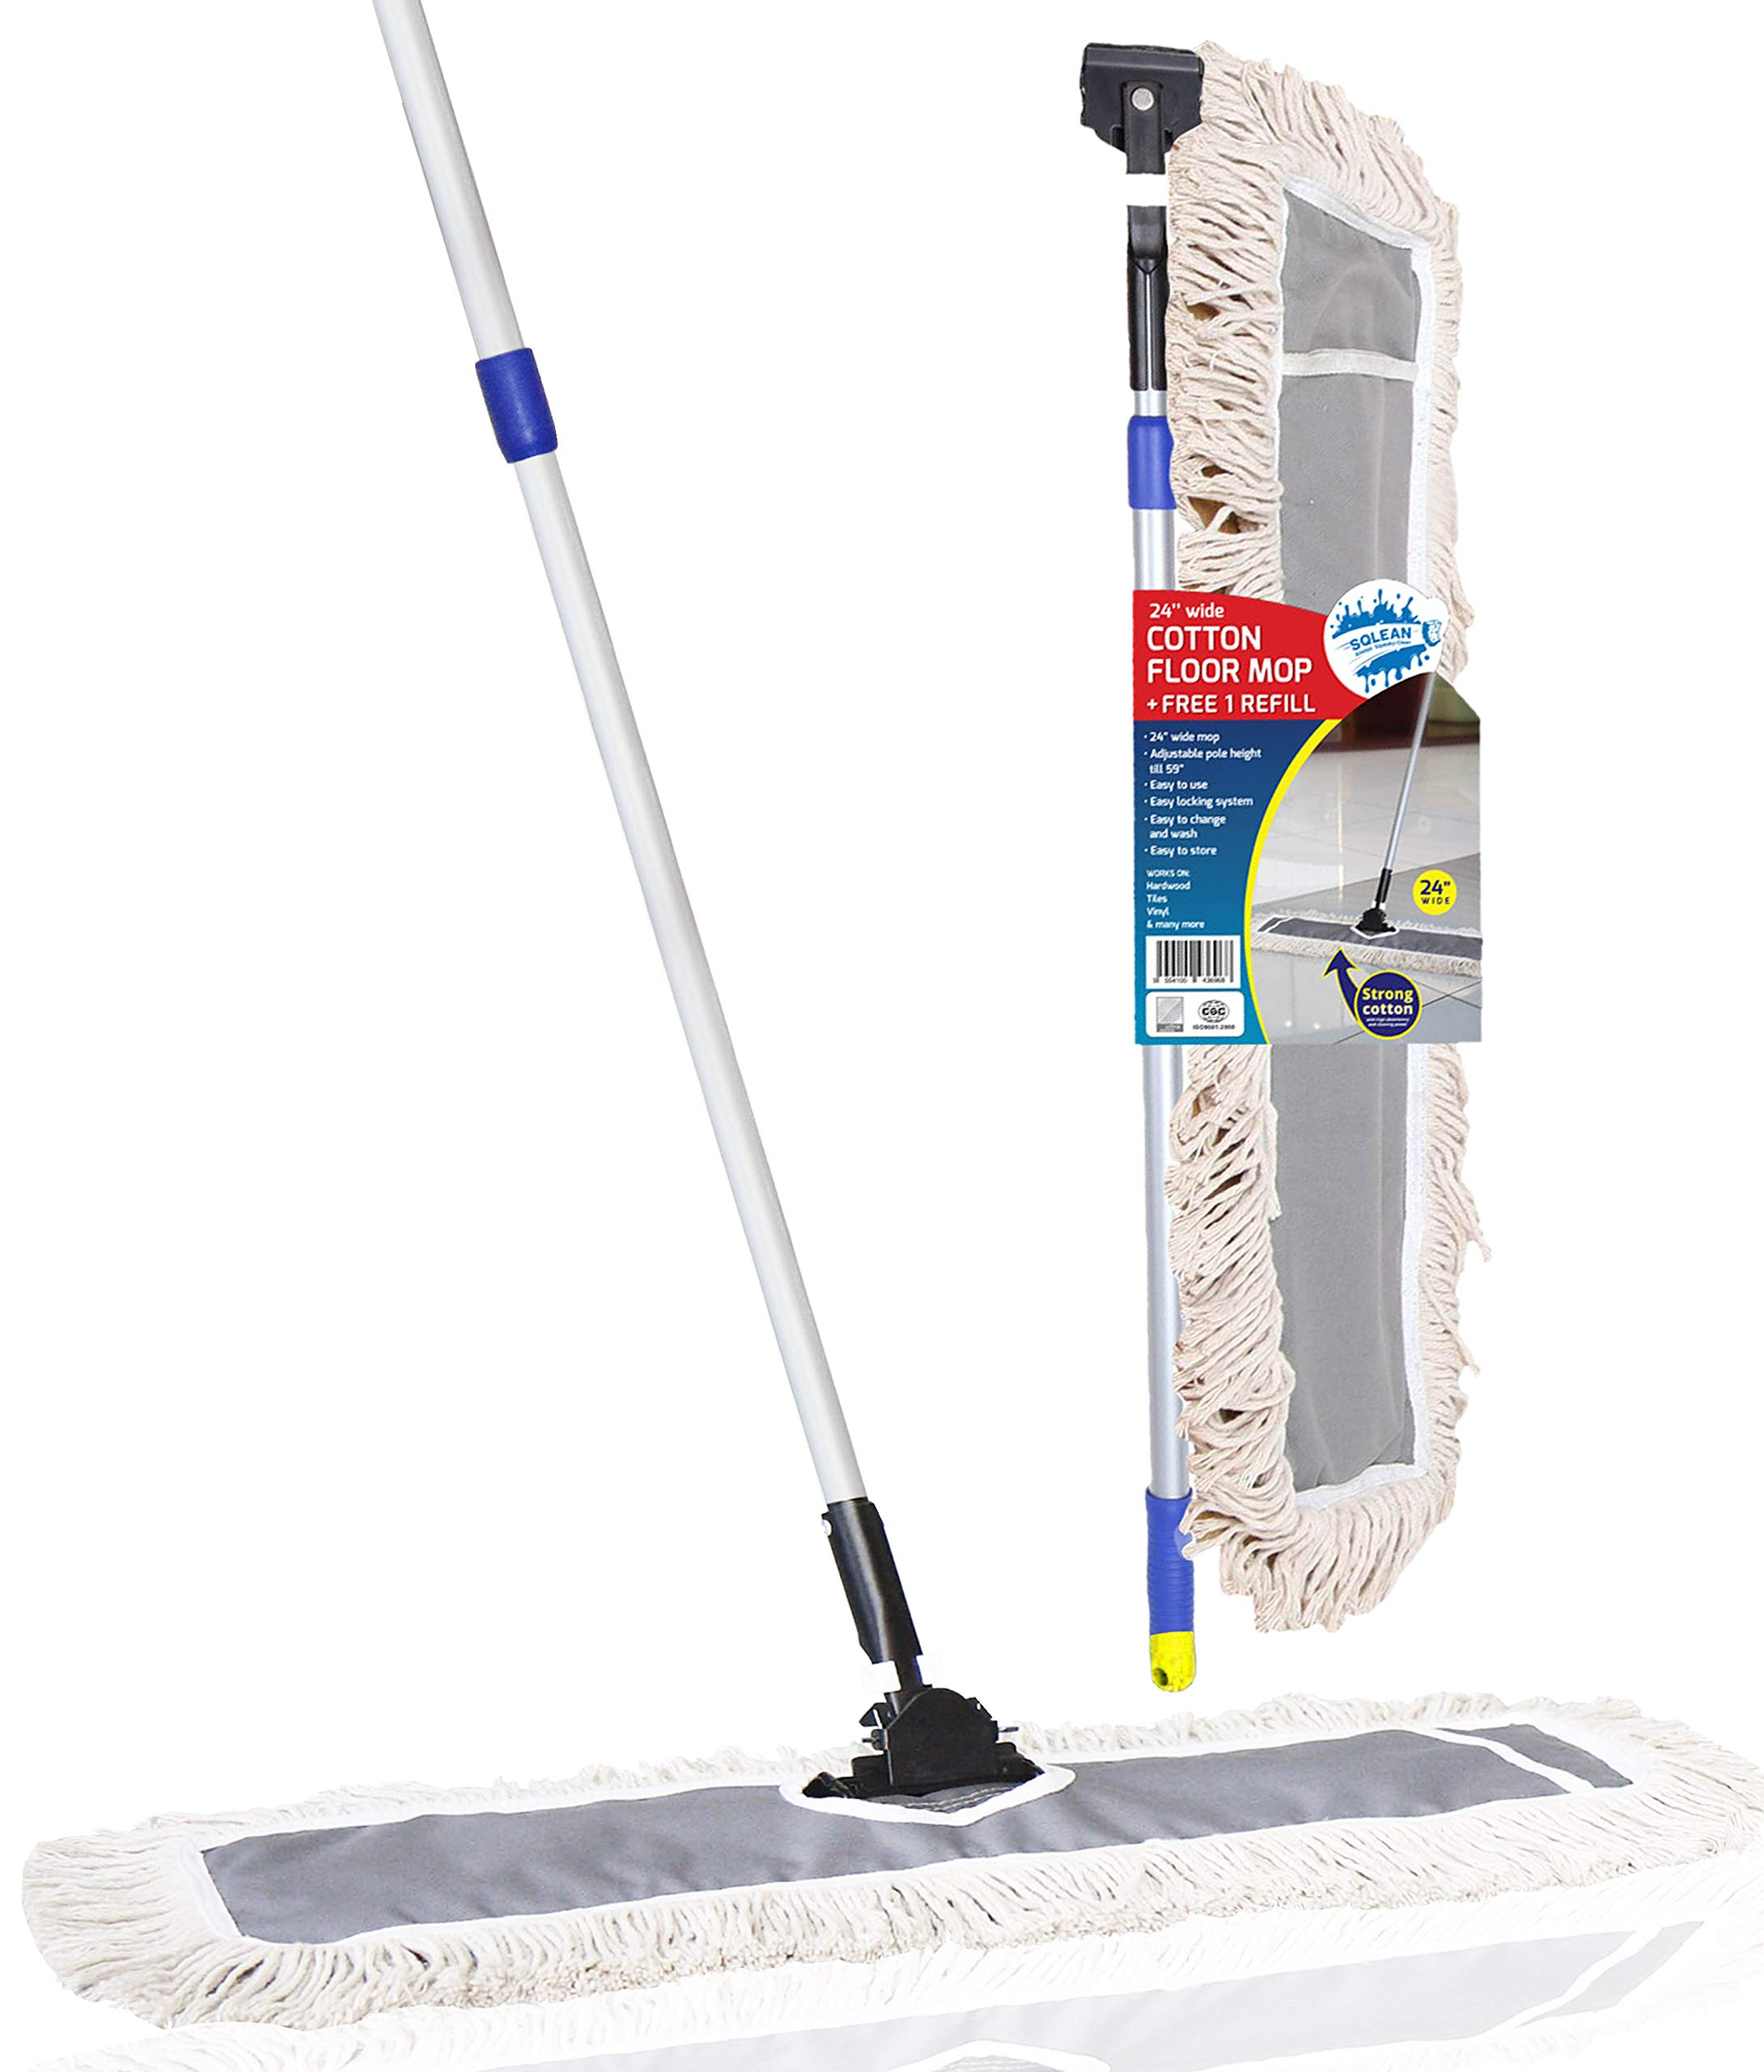 SQCLEAN Premium 24-inch Industrial Class Cotton Wide Dust Mop Head (24'' x 11'') with 1 Refill | For Home, Office, Garage | Attracts Dirt, Dust, Water